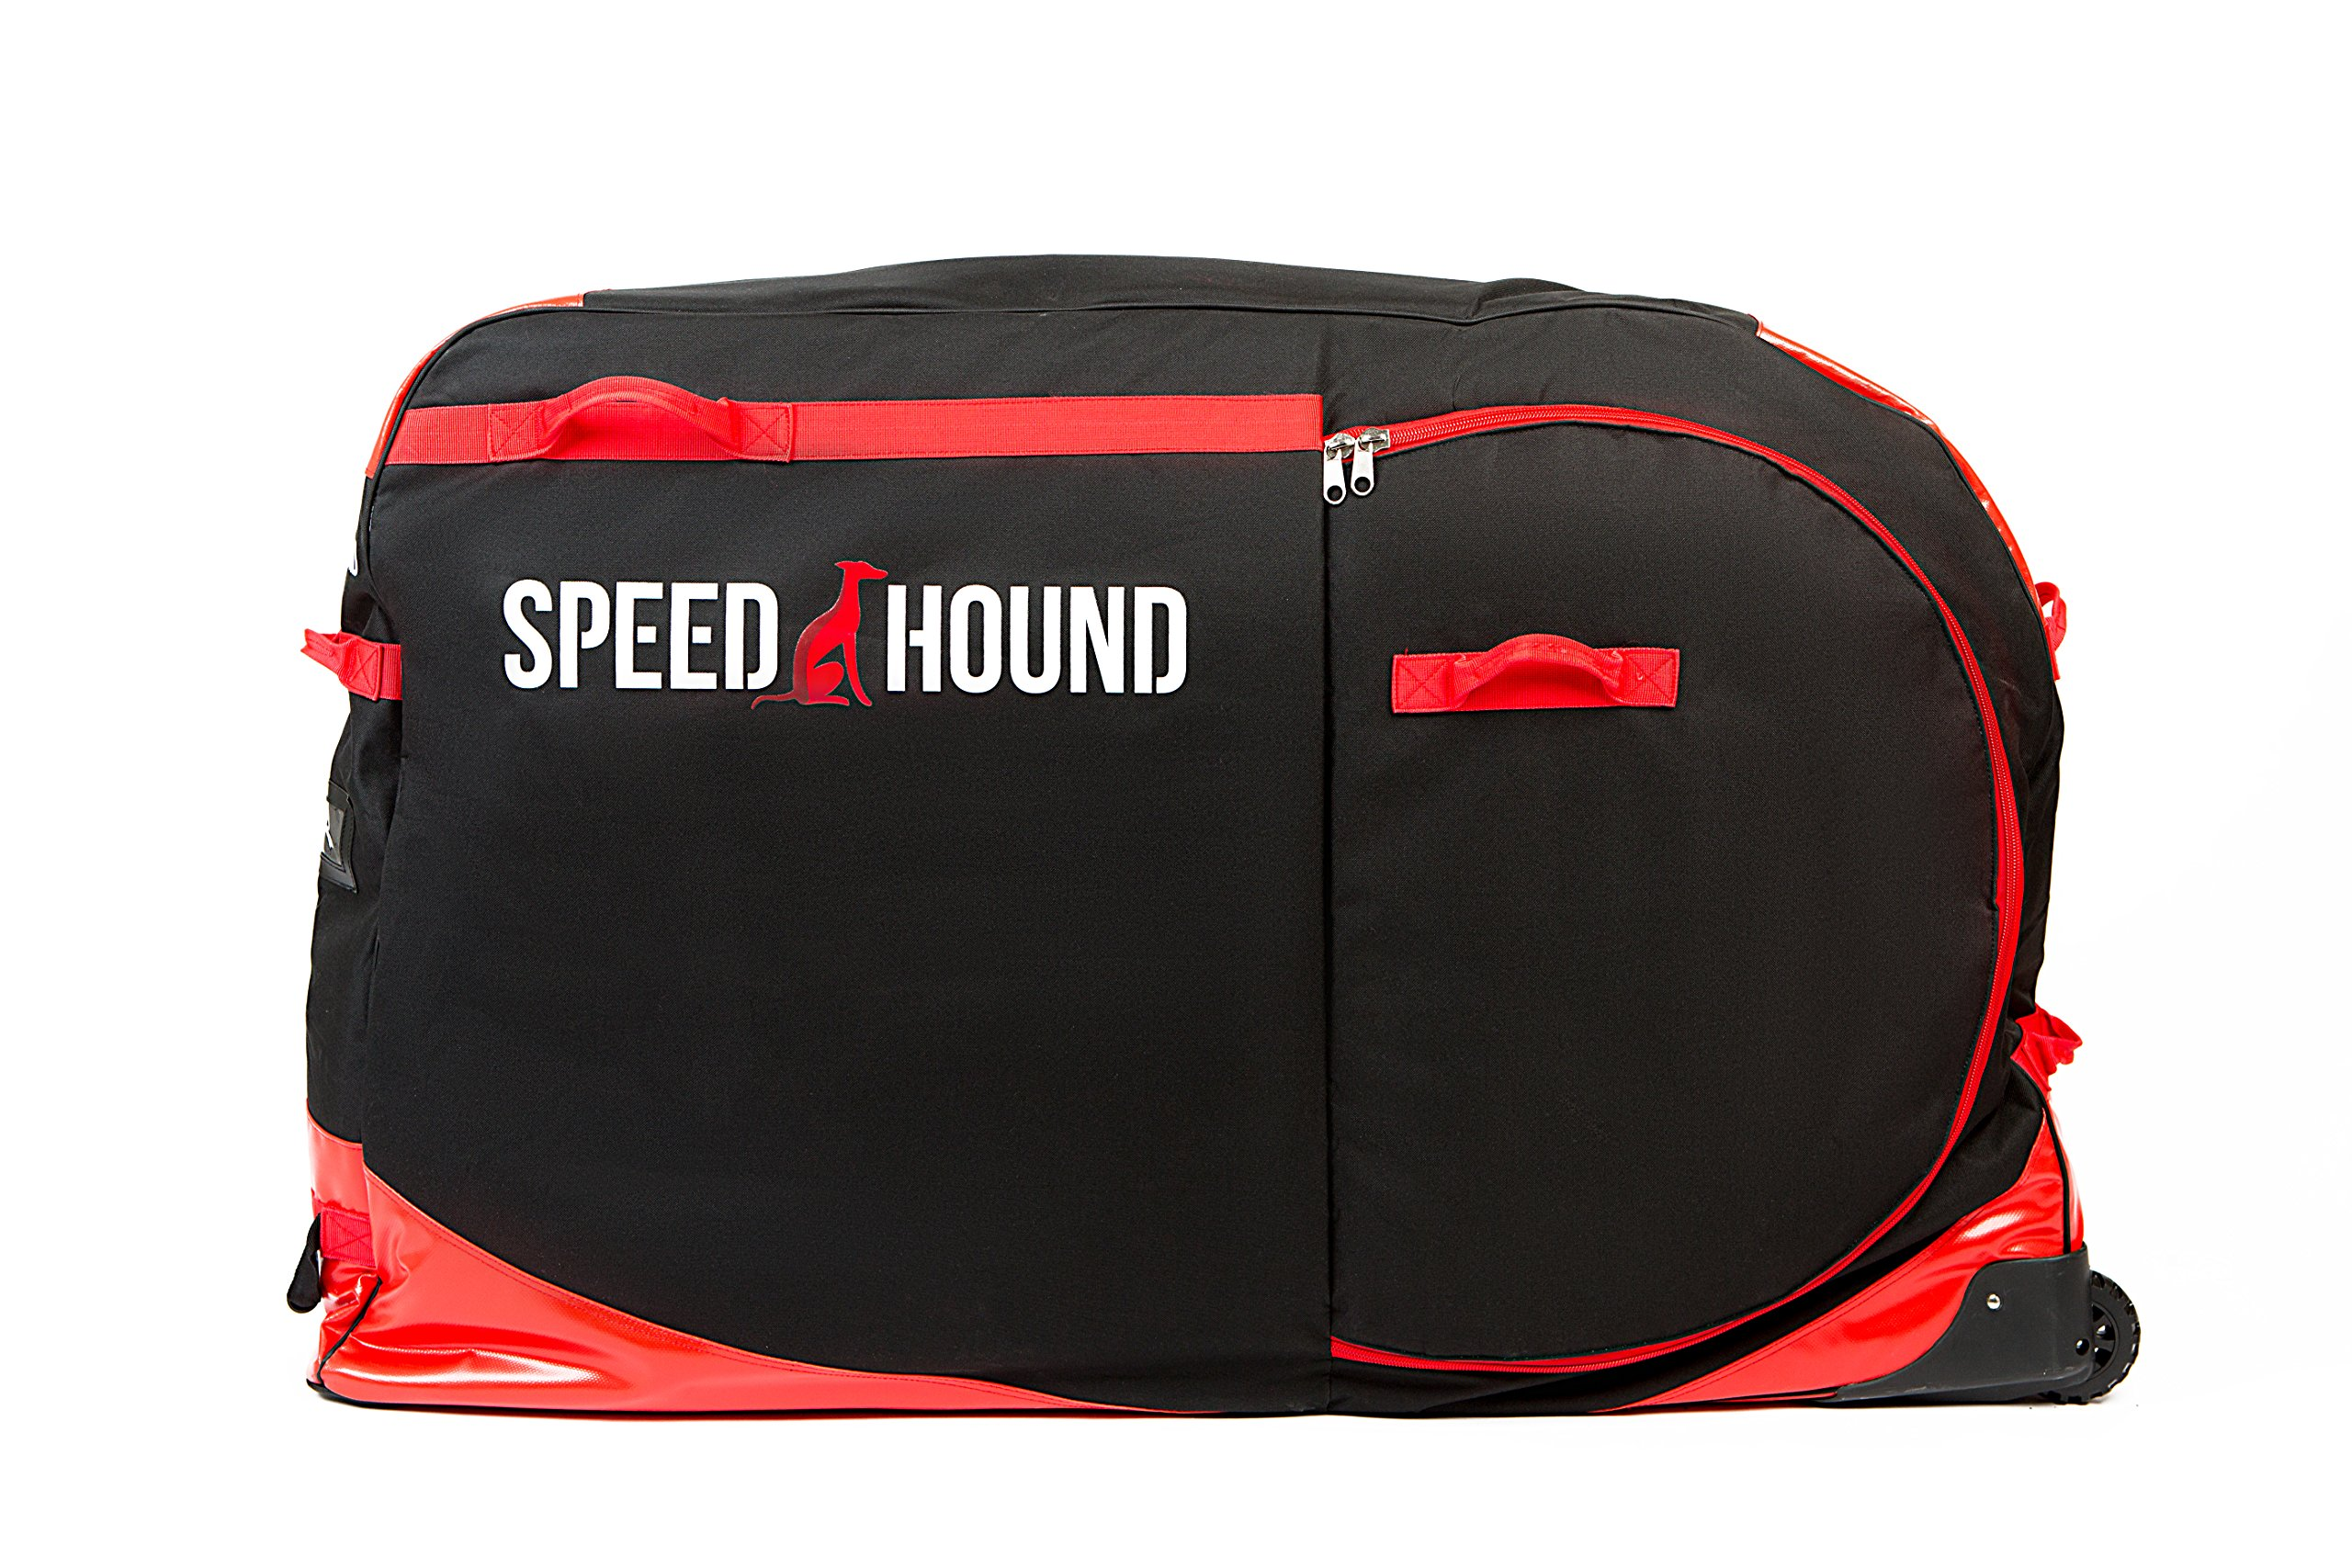 Flash Sale! Speed Hound FREEDOM Road and Mountain Bike Travel Bag/Case by Speed Hound (Image #1)